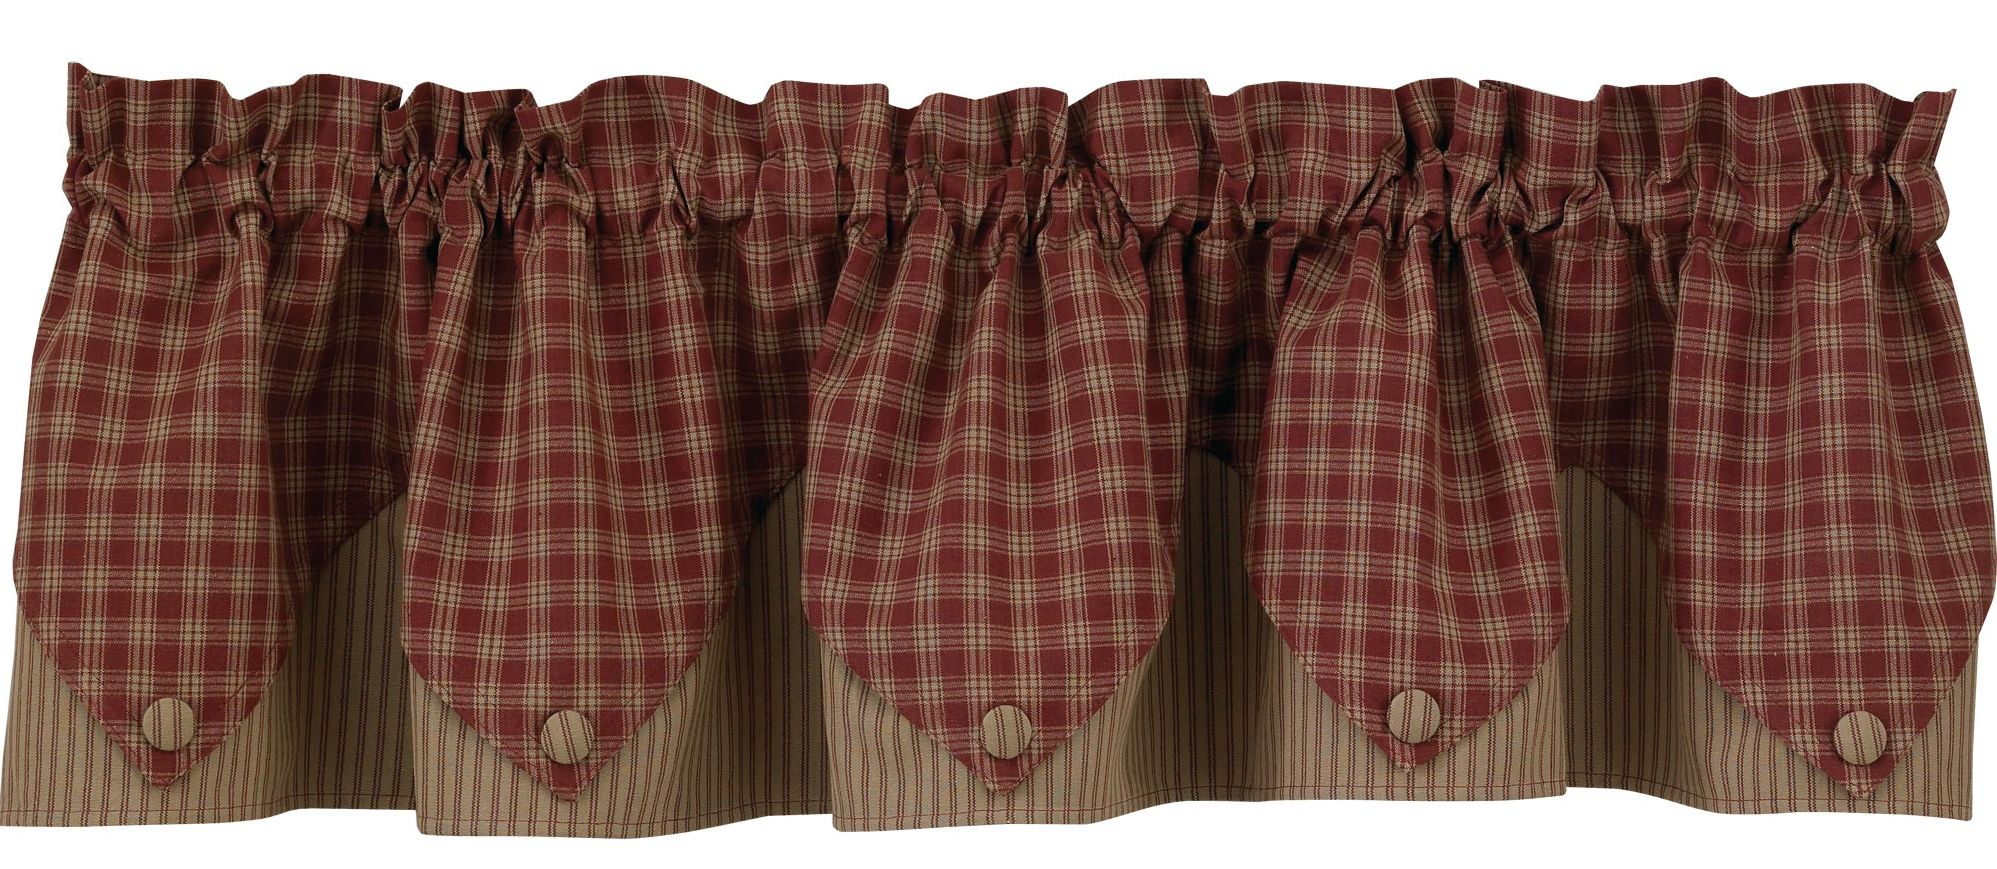 PKD-315-PVL-K-Sturbridge-Wine-Point-Valance-LRG